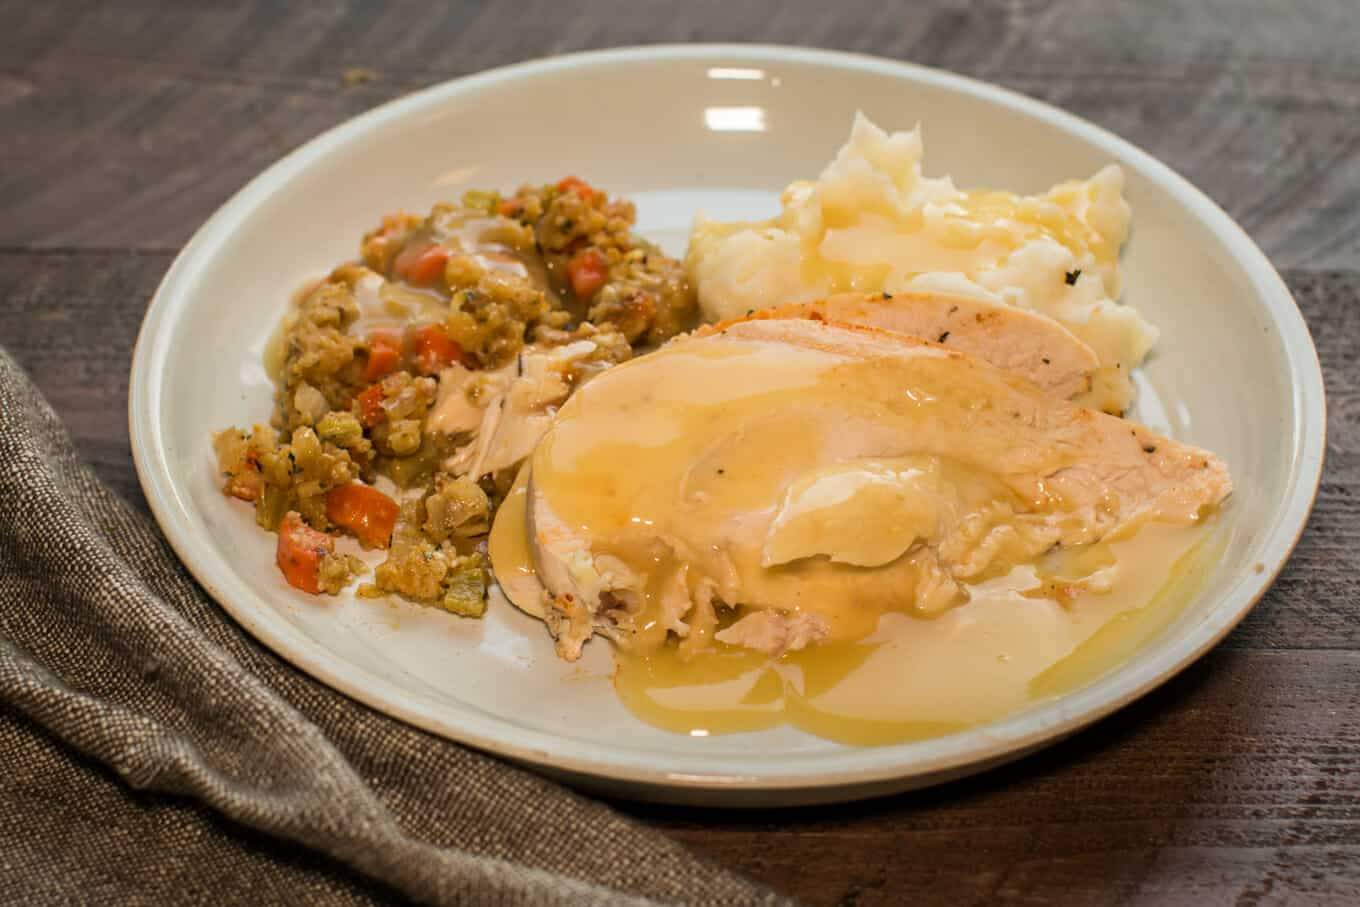 sliced chicken with stuffing and mashed potatoes on a grey plate.